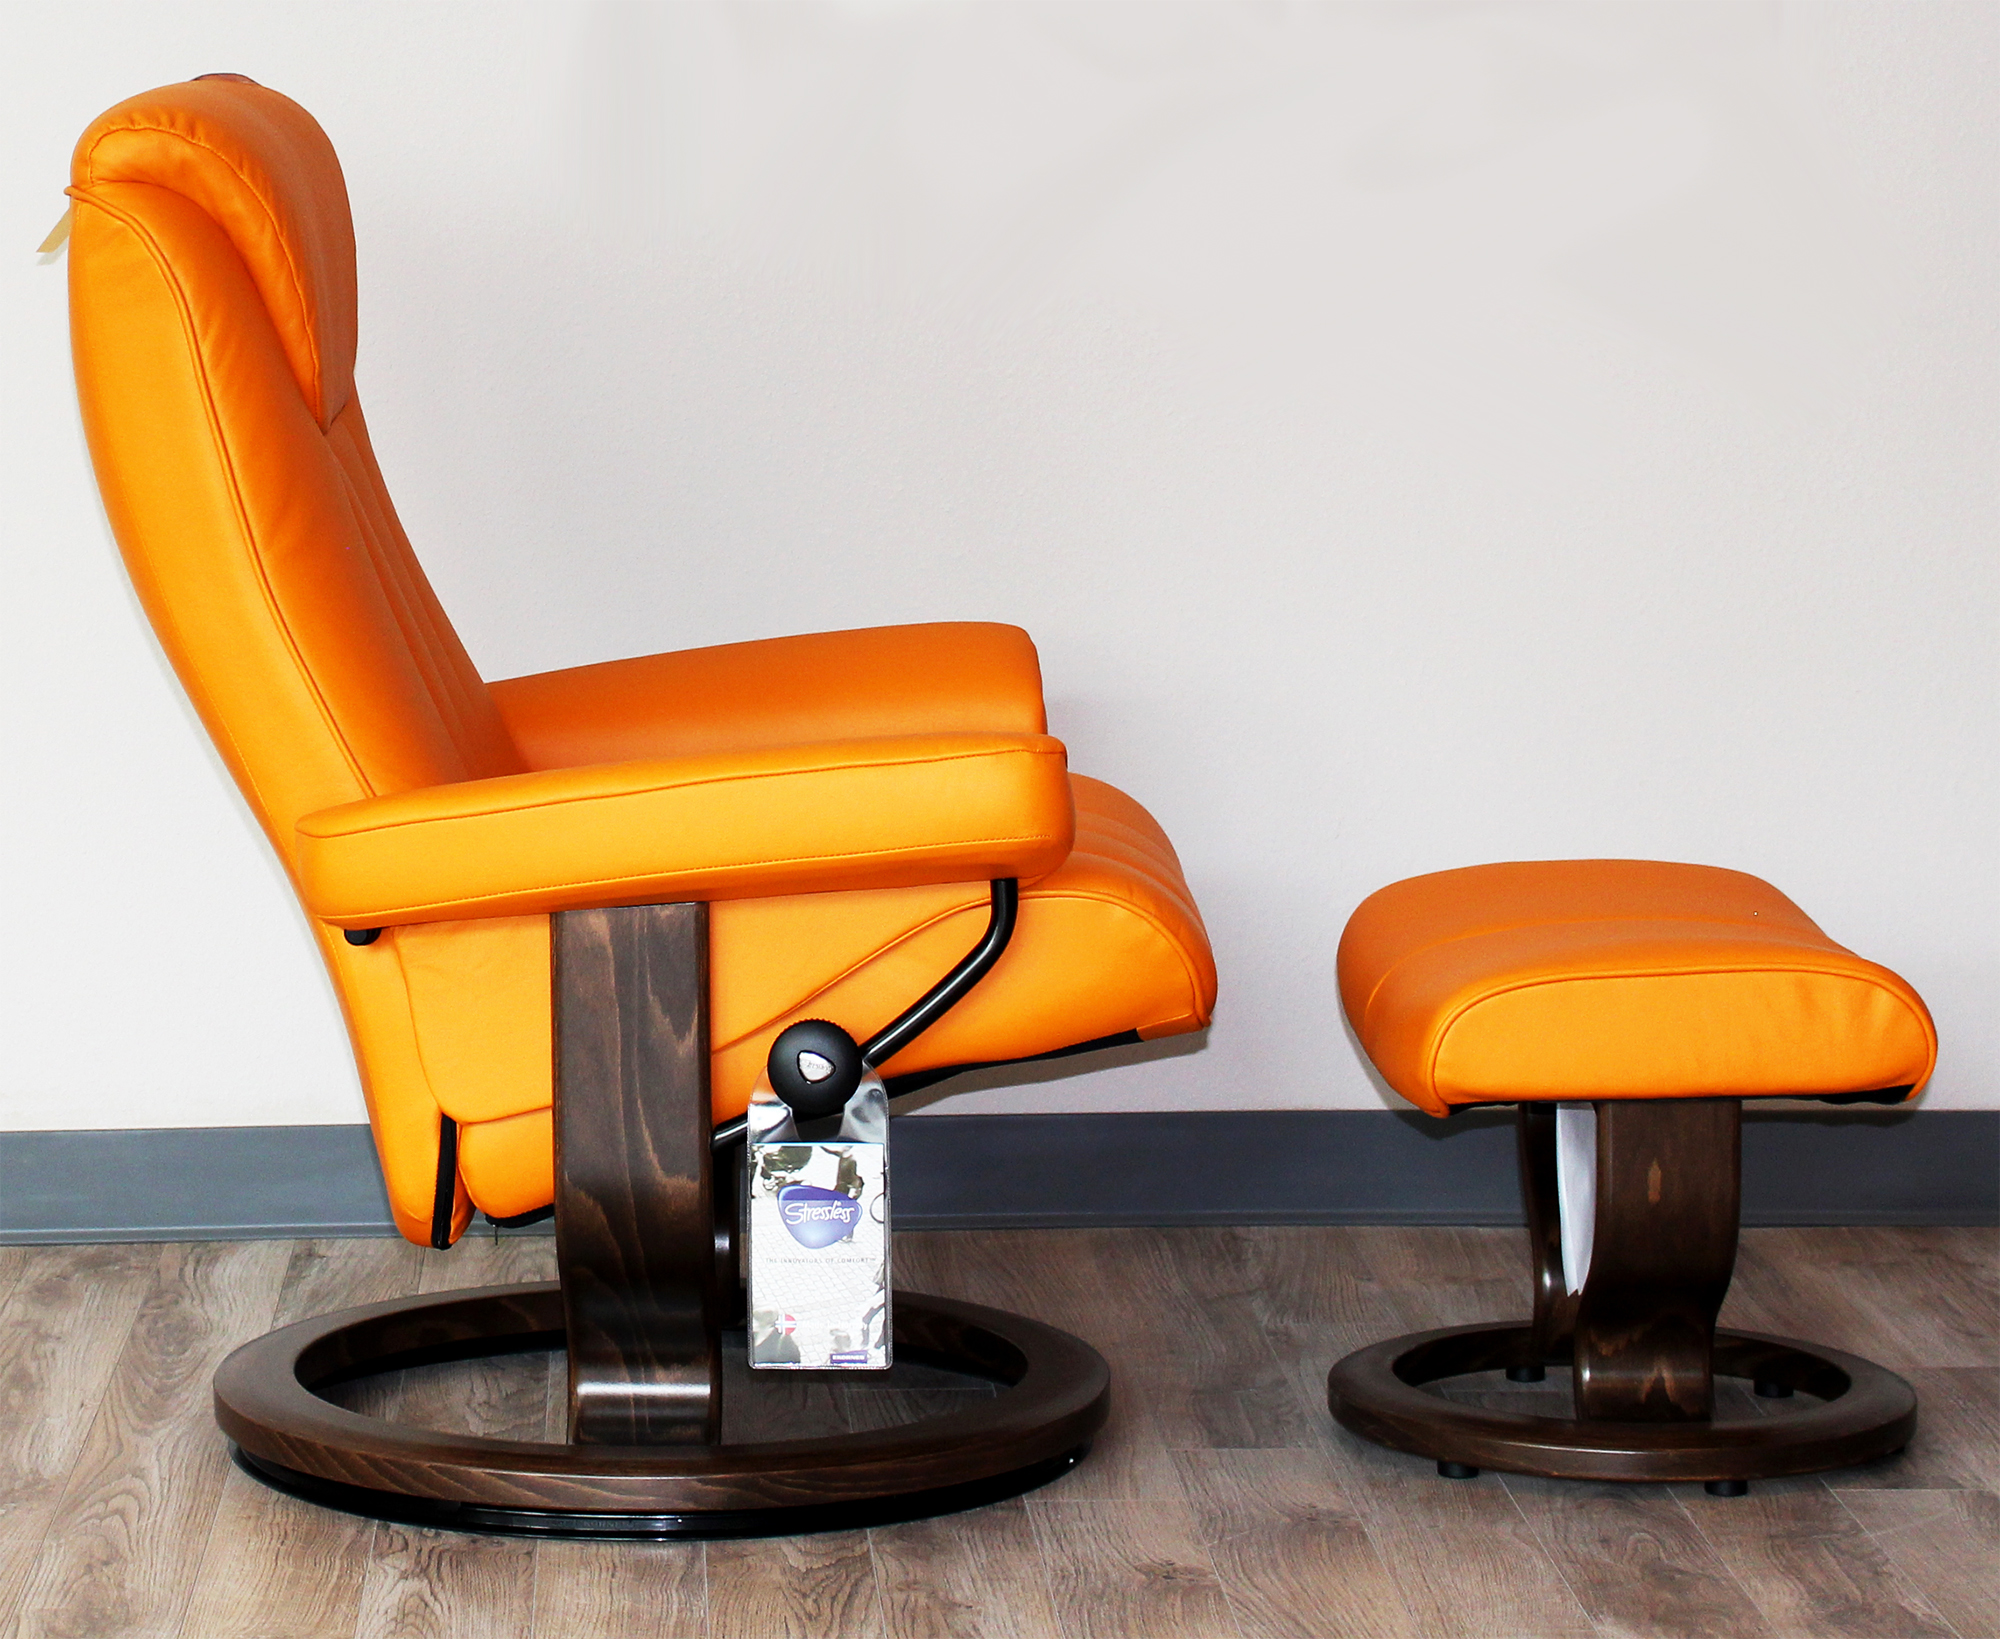 Stressless Bliss Recliner Chair and Ottoman Paloma Clementine Leather & Stressless Bliss Paloma Clementine Leather Recliner Chair by ... islam-shia.org